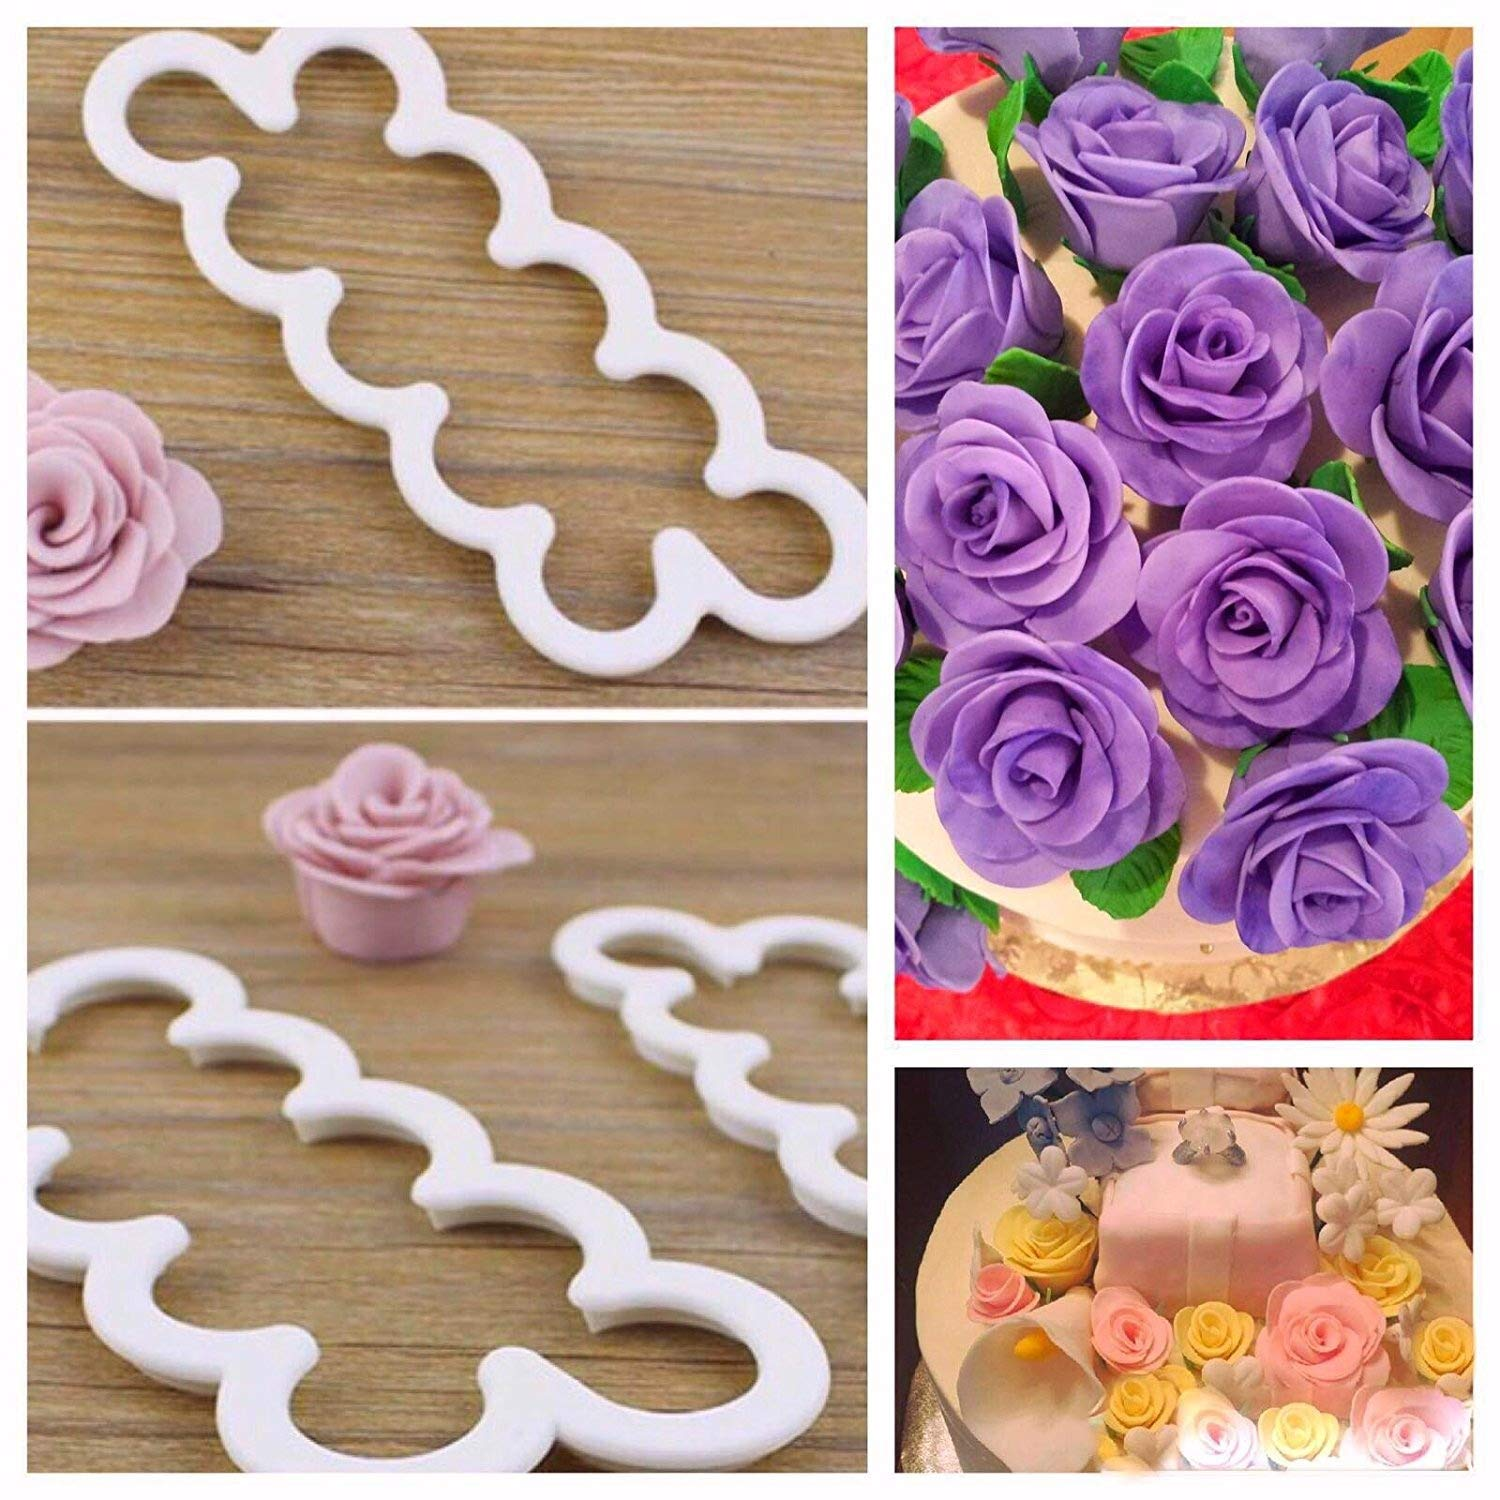 Amazon Com Sugar And Spice Kitchens Rose Fondant Cutters Edible